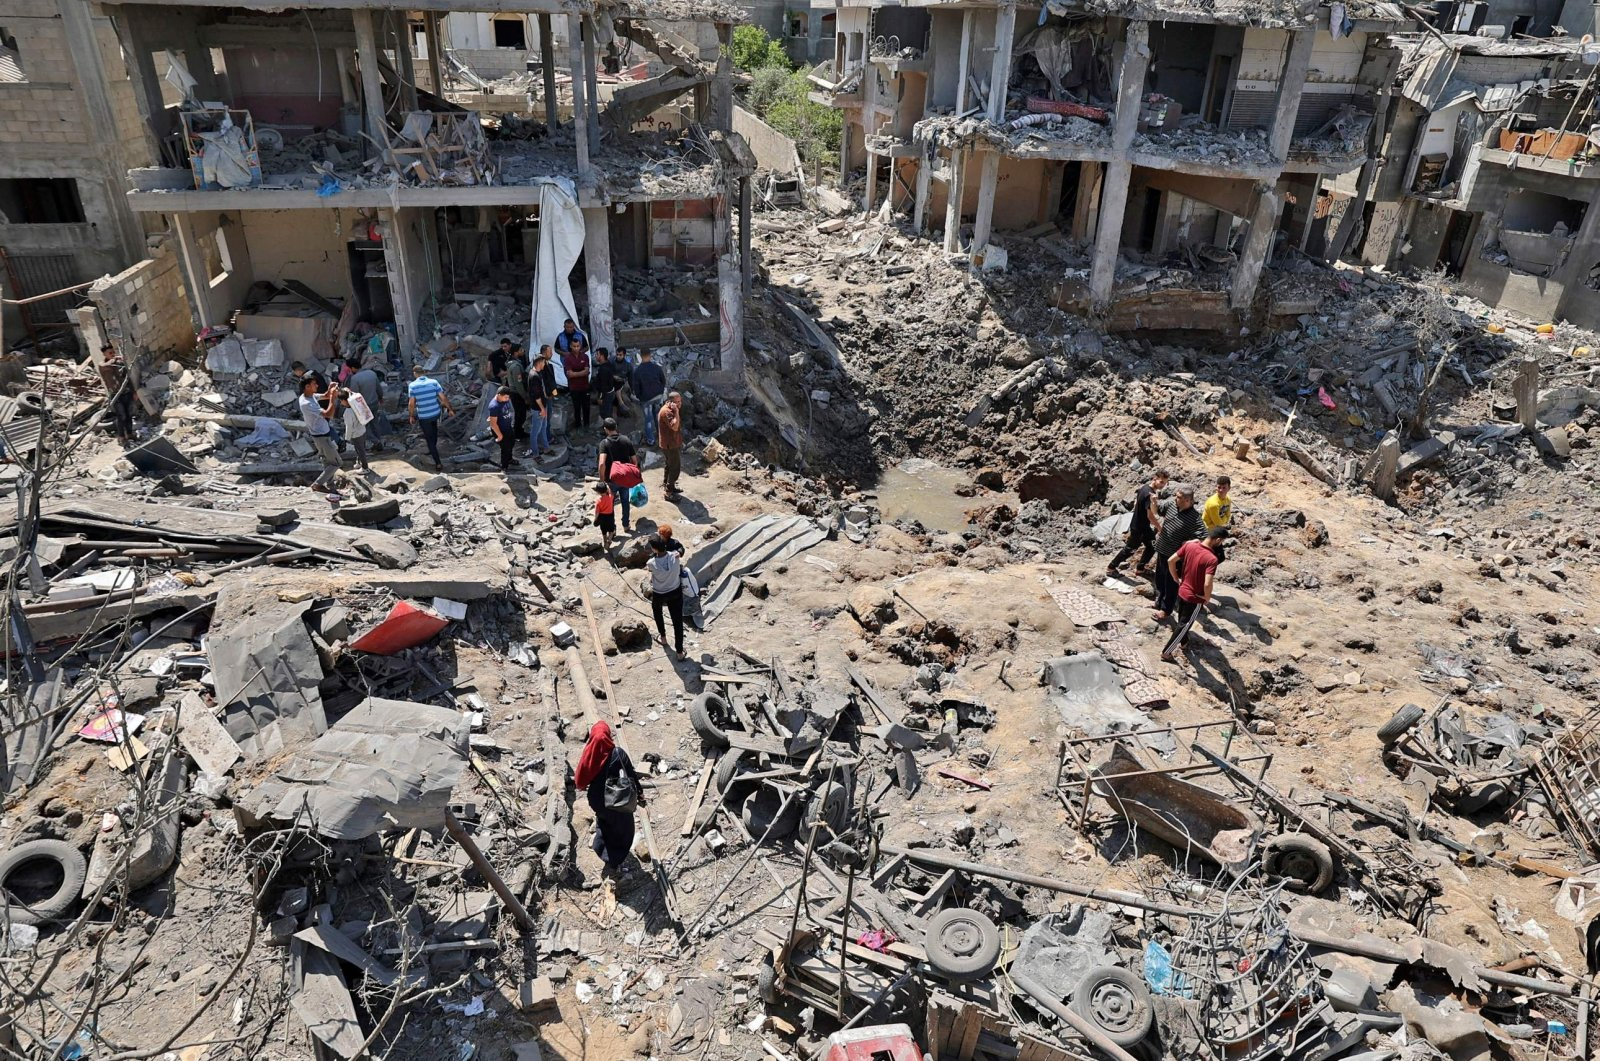 Palestinians assess the damage caused by Israeli airstrikes, in Beit Hanun in the northern Gaza Strip, Palestine, May 14, 2021. (AFP Photo)